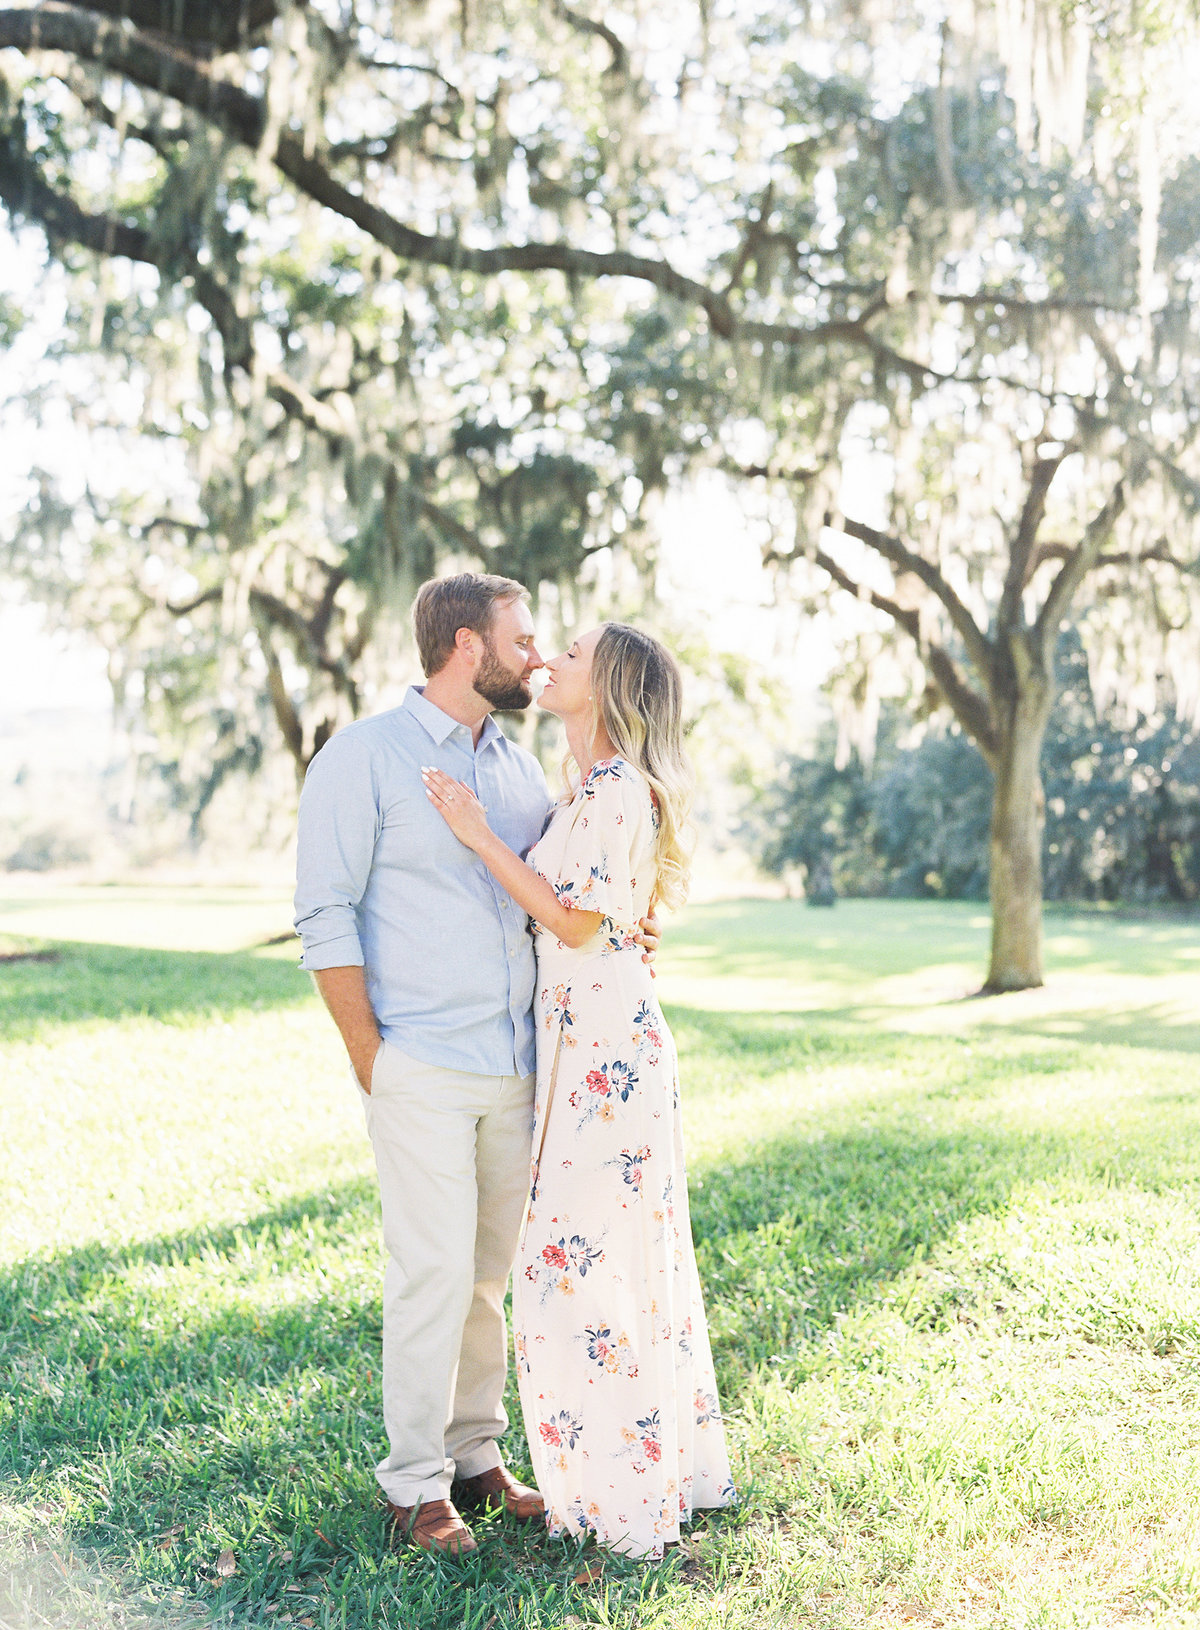 Bok_Tower_Garden_Film_Fine_Art_Engagement_Session-7